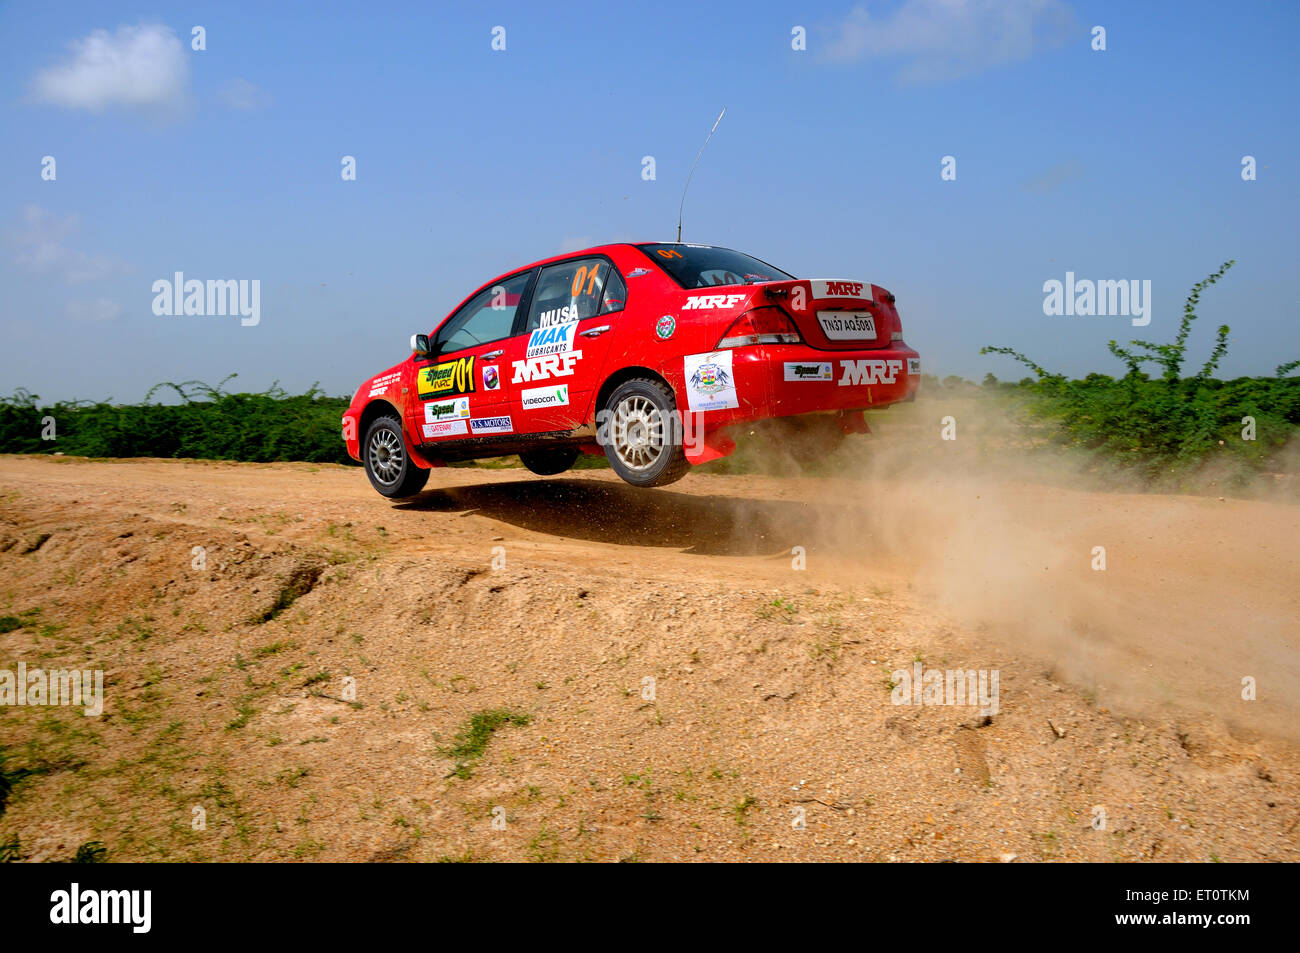 Car race contest in ; Jodhpur ; Rajasthan ; India - Stock Image